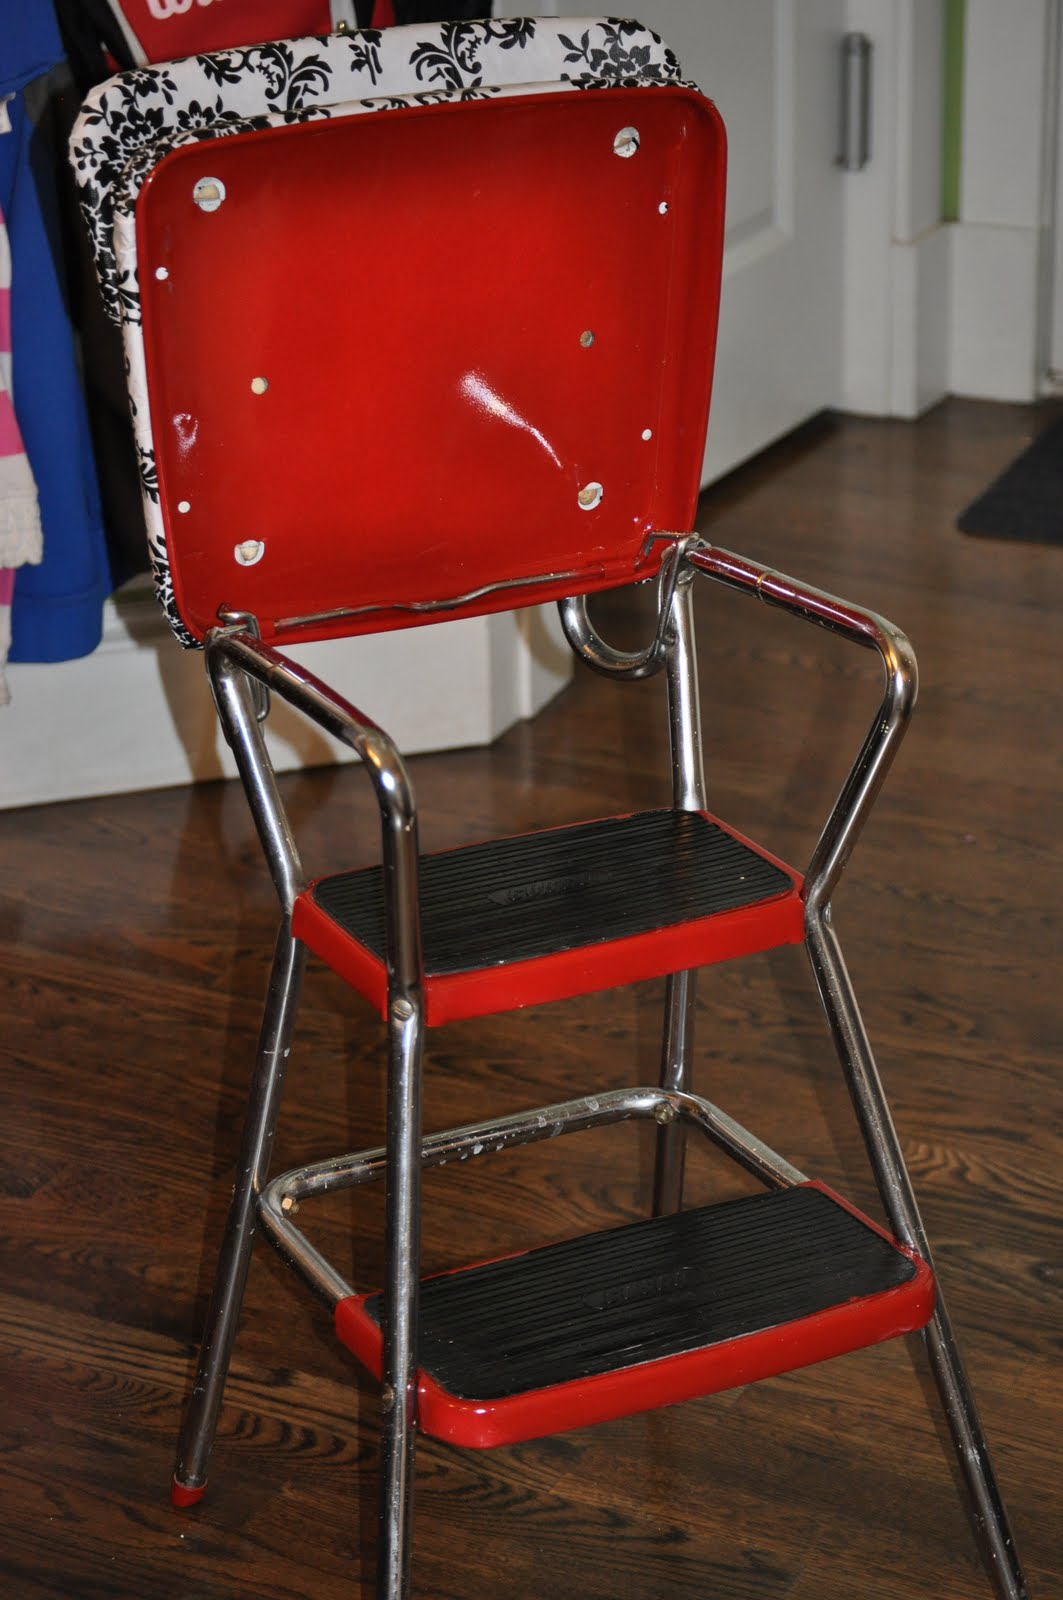 cassandra design classic red kitchen chair step stool. Black Bedroom Furniture Sets. Home Design Ideas